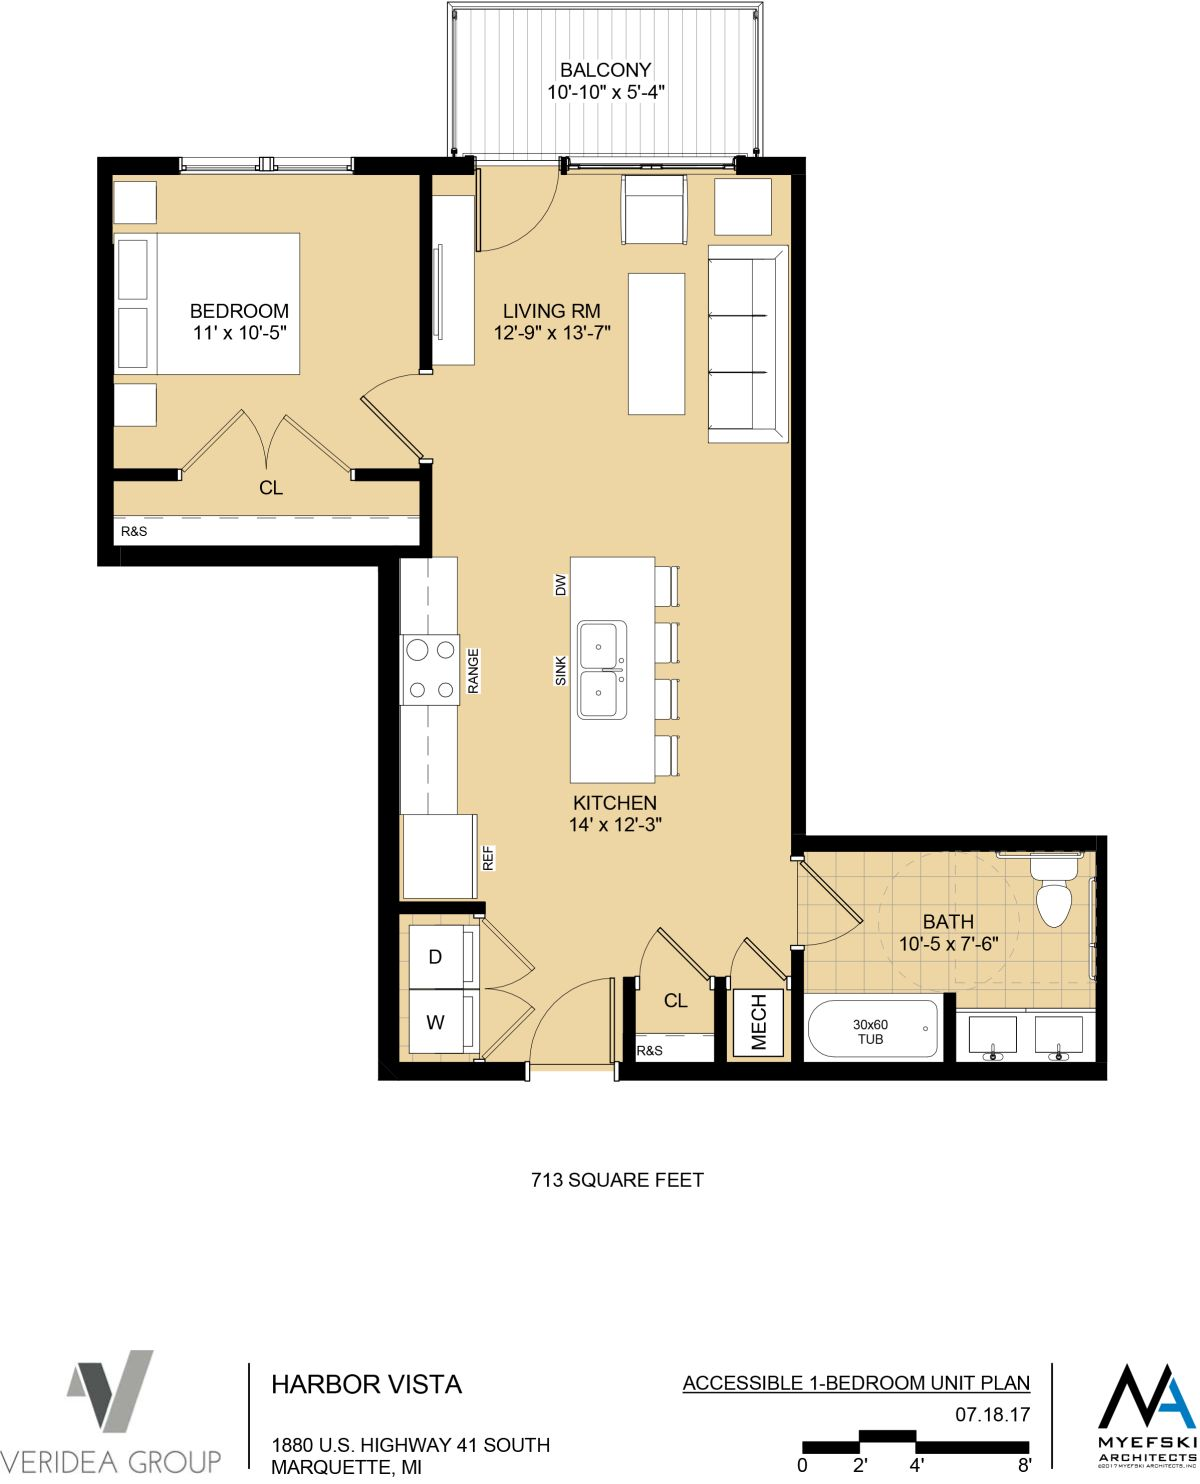 Handicapped Accessible 1 Bedroom - 713 sq ft